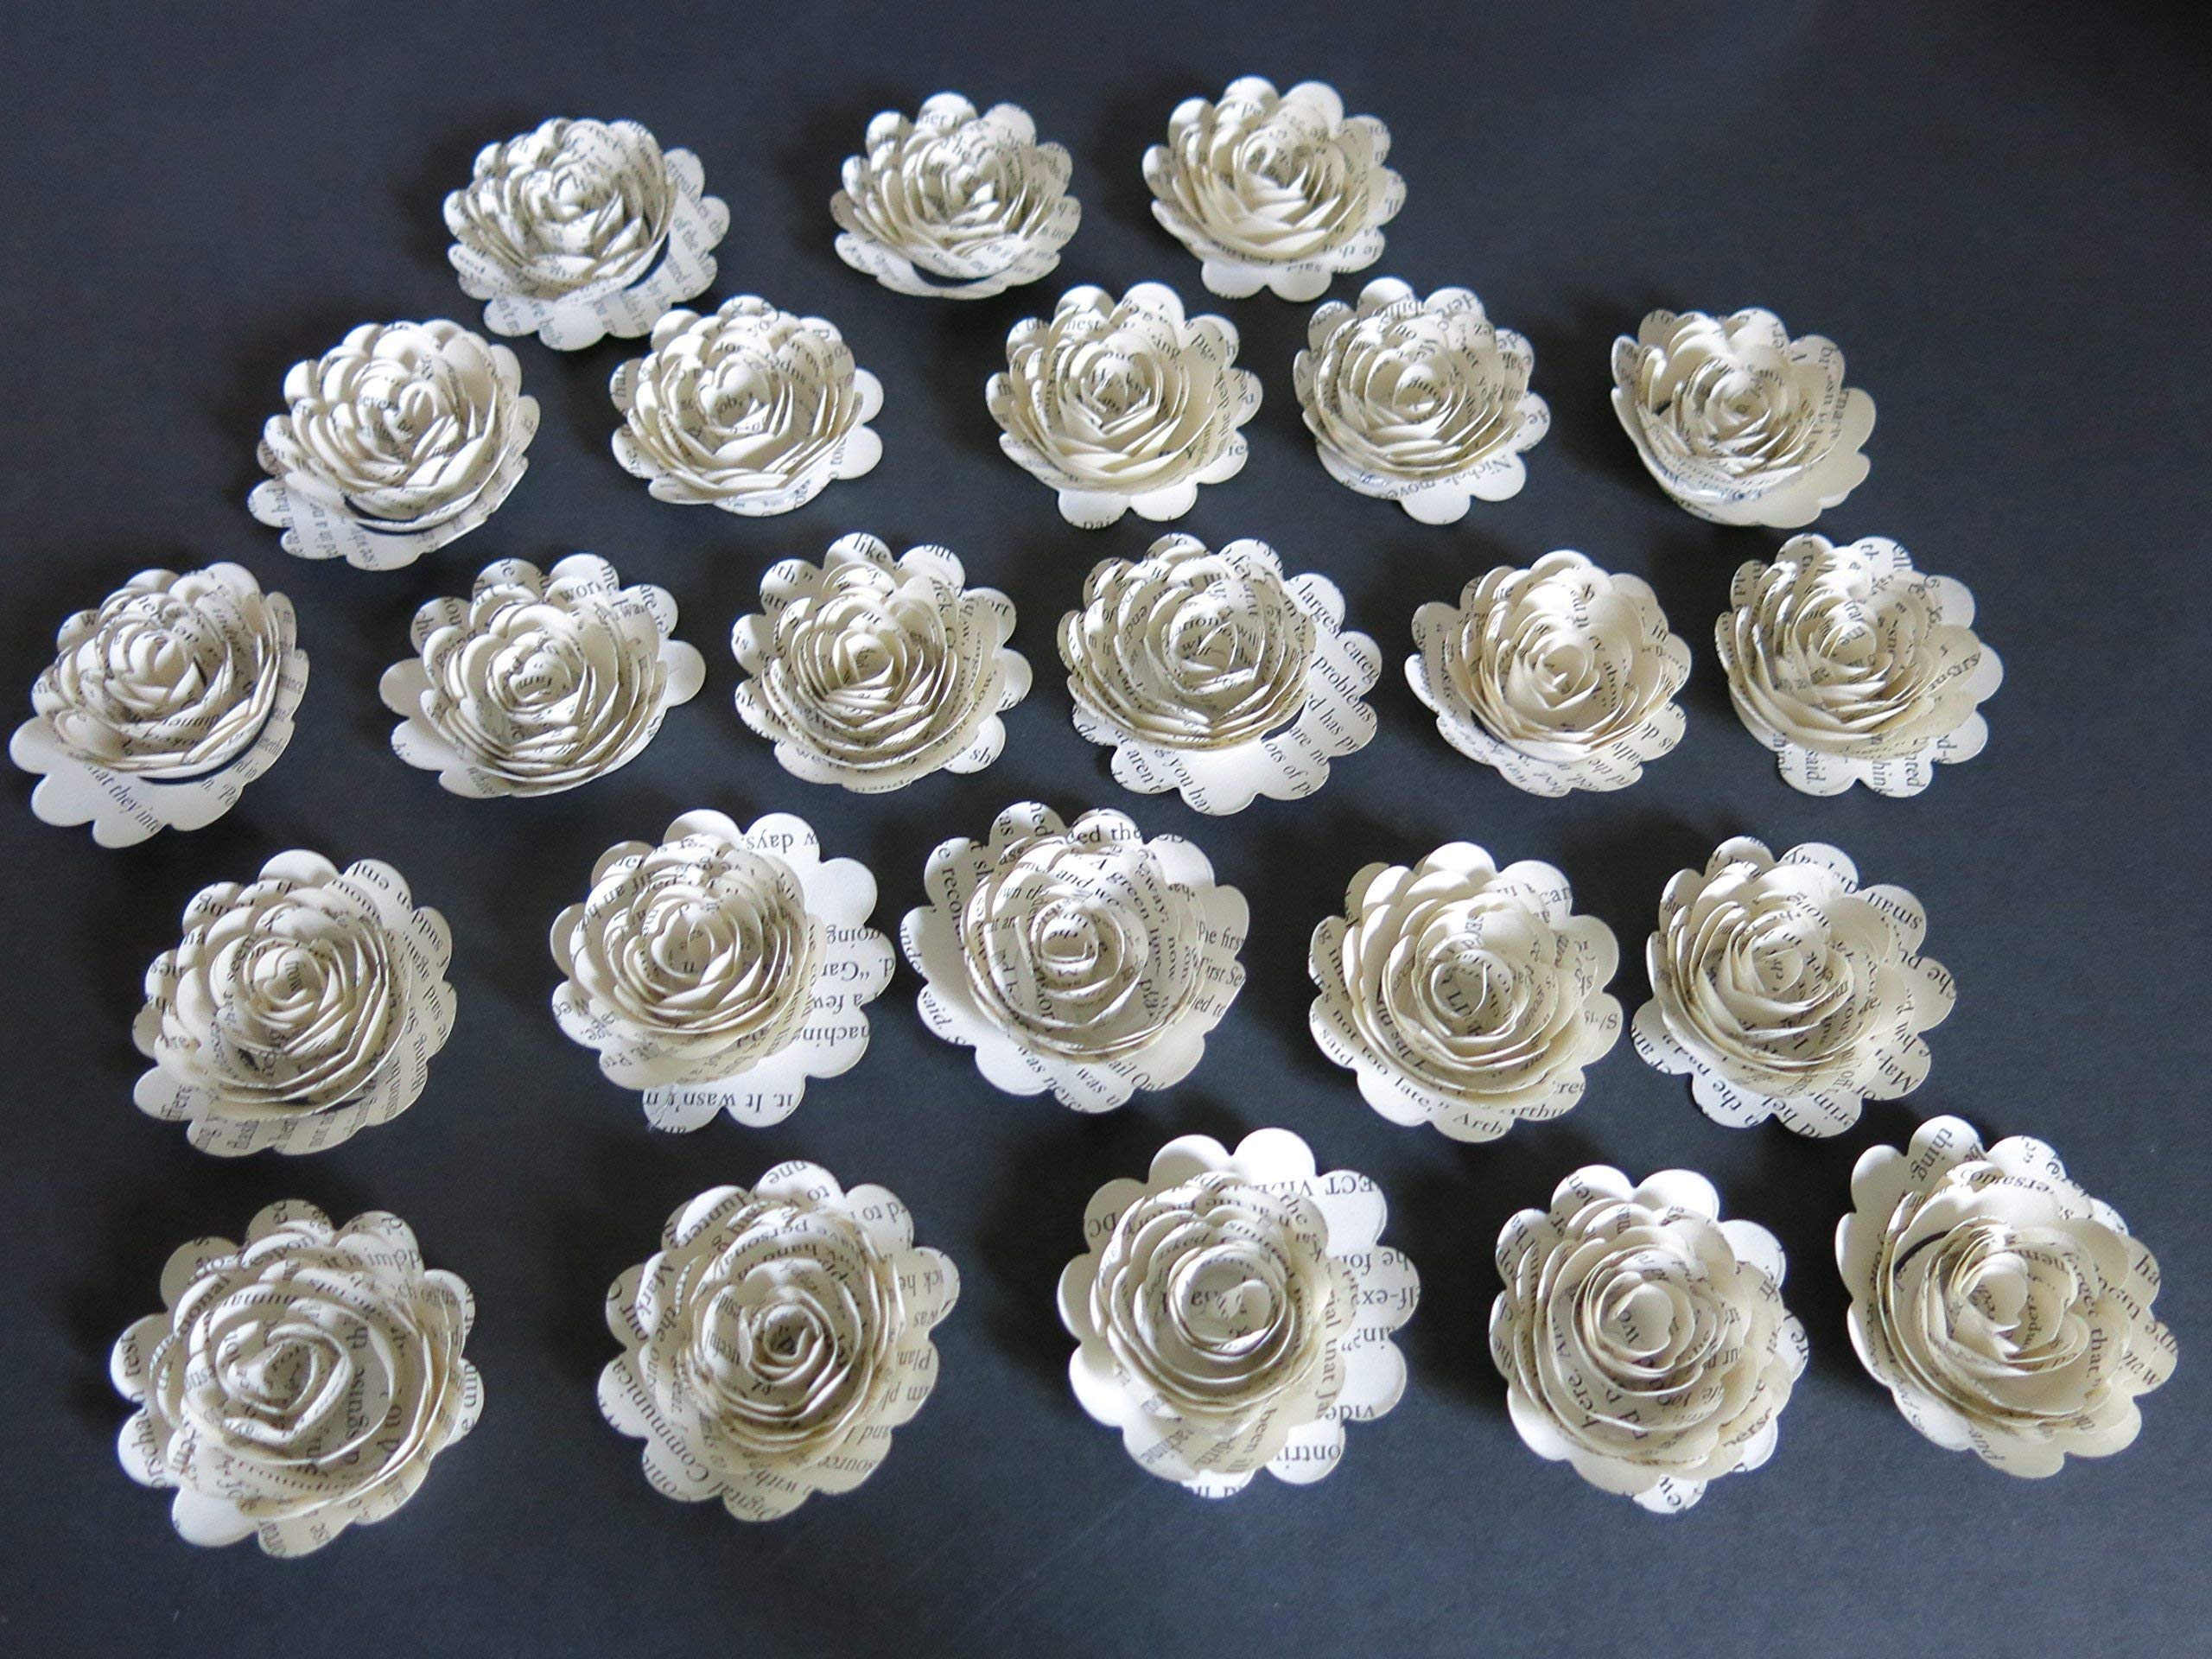 Scalloped-Book-Page-Roses-Paper-Flowers-Wedding-Decorations-24-Piece-Set-Mini-15-Floral-Bridal-Shower-Table-Decor-Graduation-or-Teacher-Gift